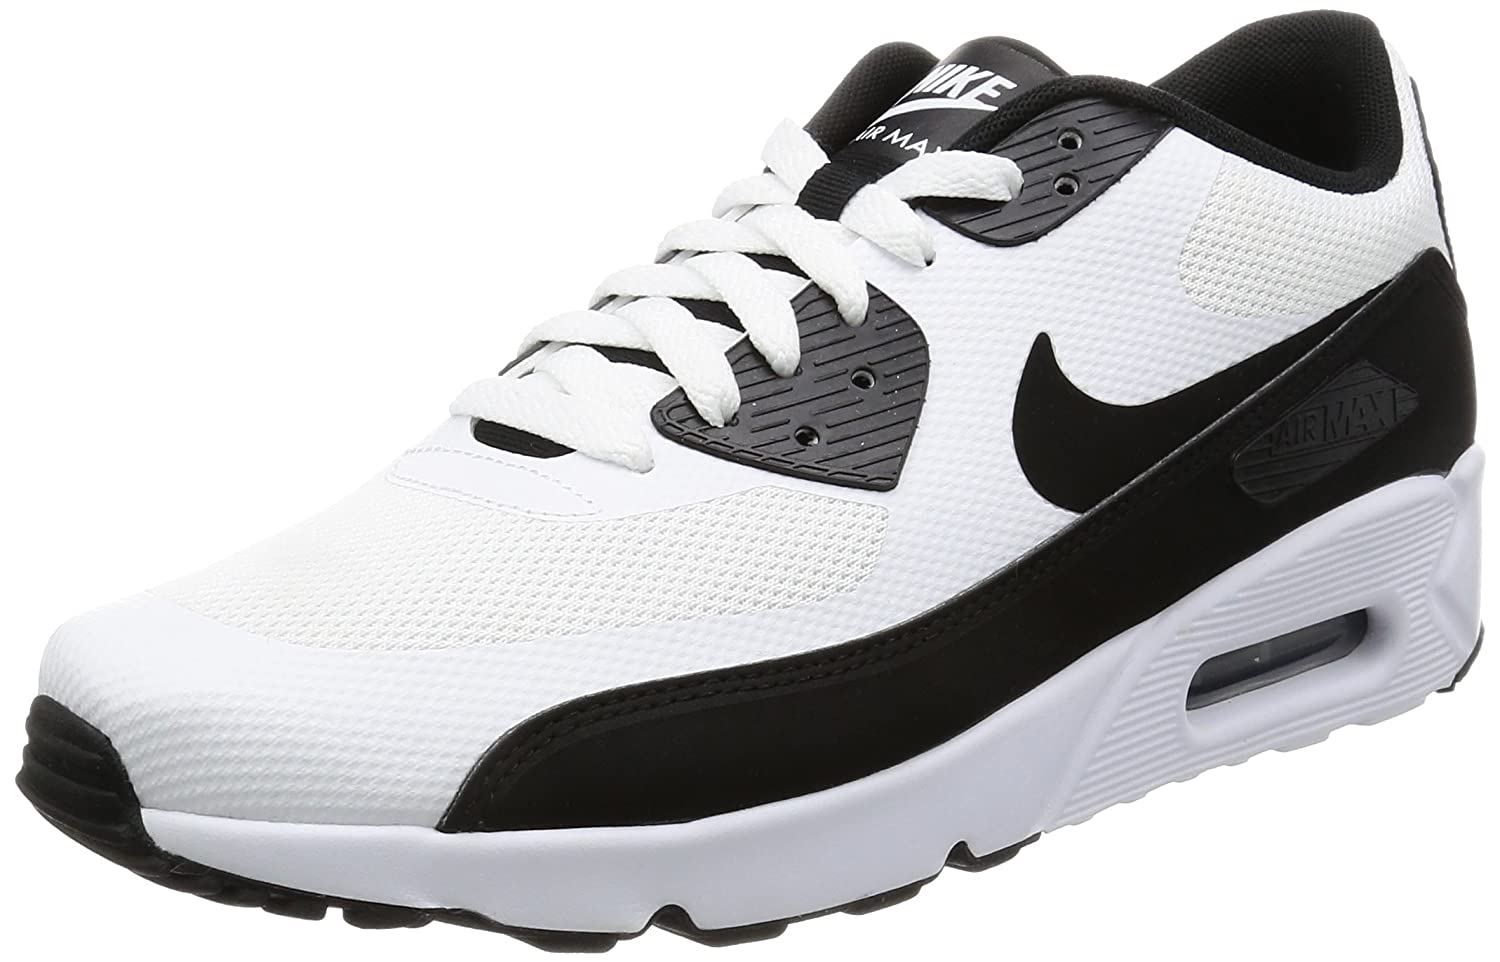 livraison gratuite 6a80b f937a Amazon.com | Nike AIR MAX 90 ULTRA 2.0 ESSENTIAL mens ...